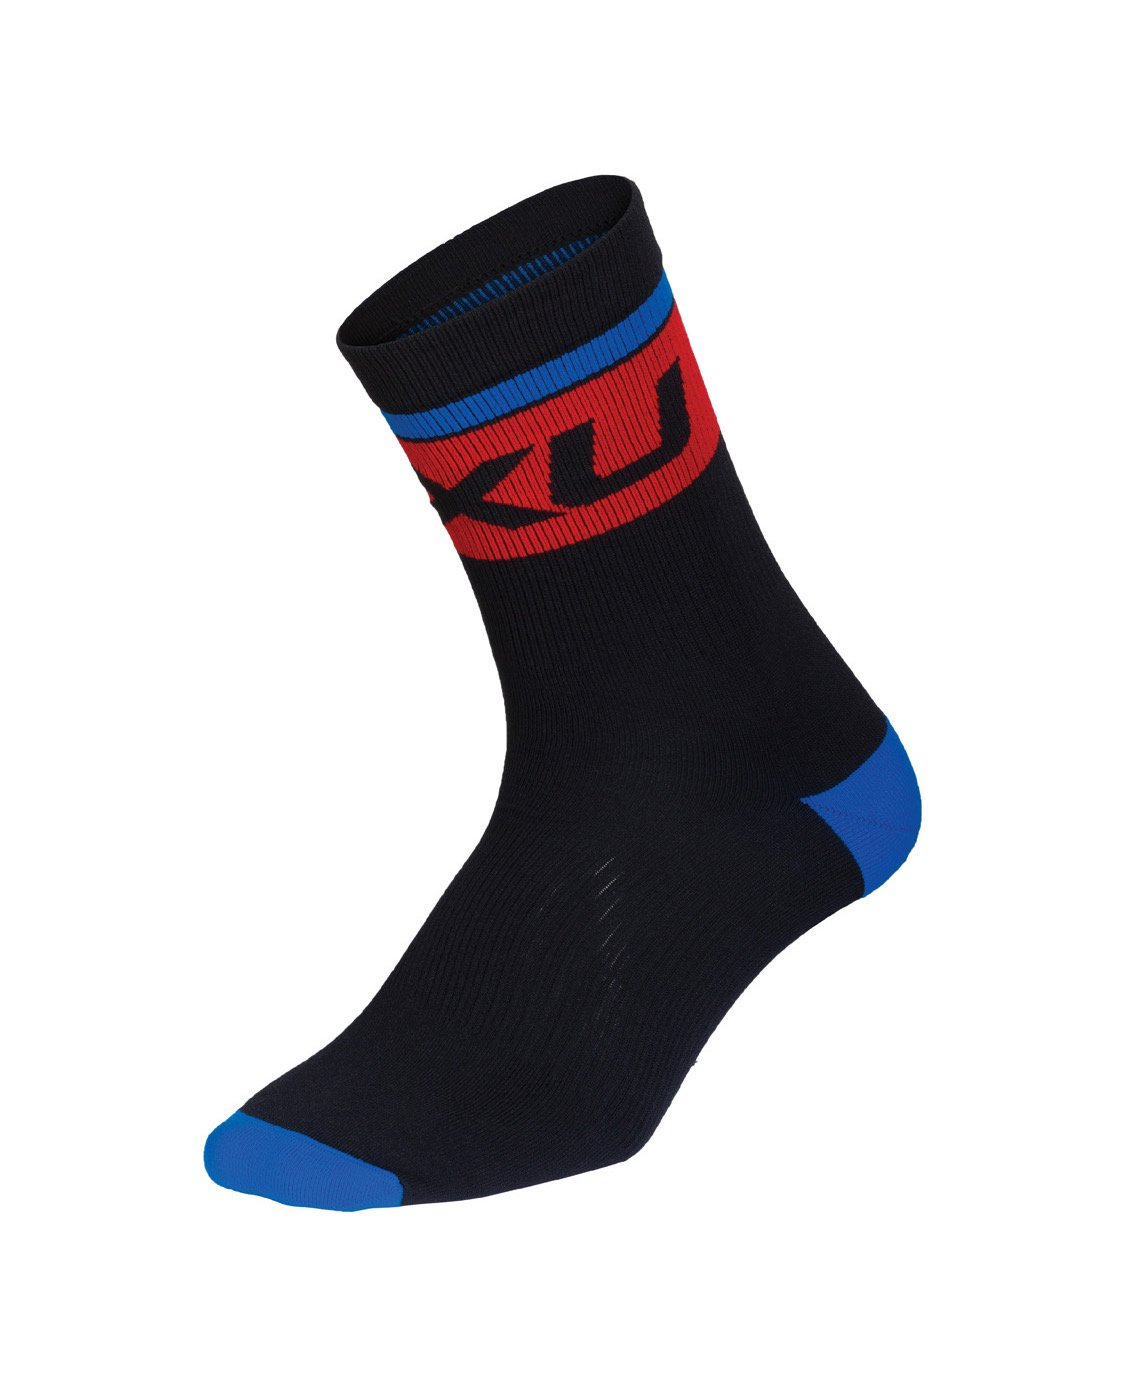 2XU Everyday Casual Comfort Socks - Multiple Colors